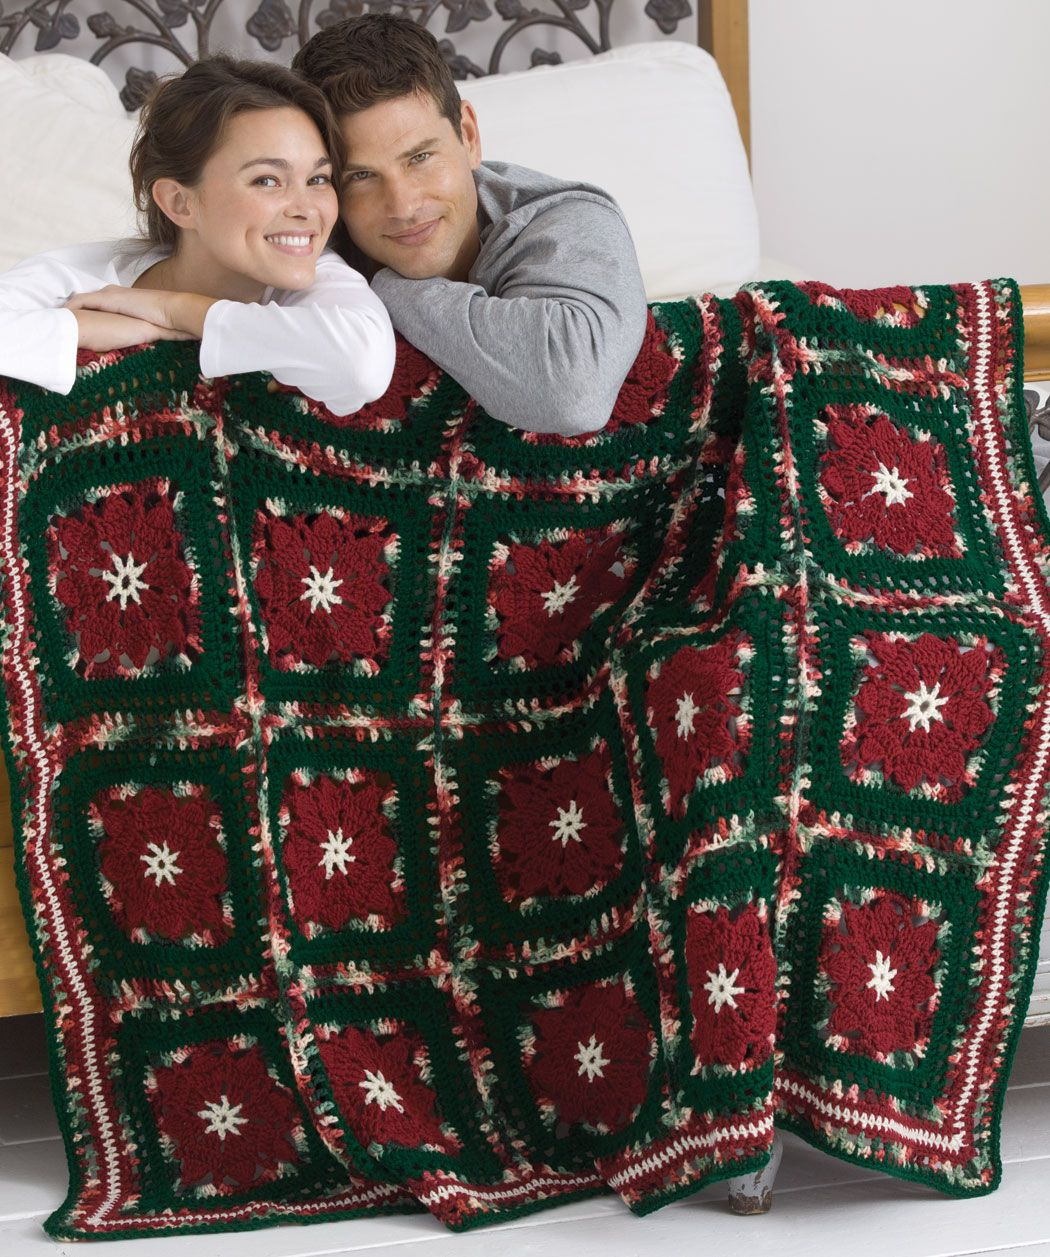 Poinsettia Throw free pattern from Redheart.com   Crochet Afghans ...